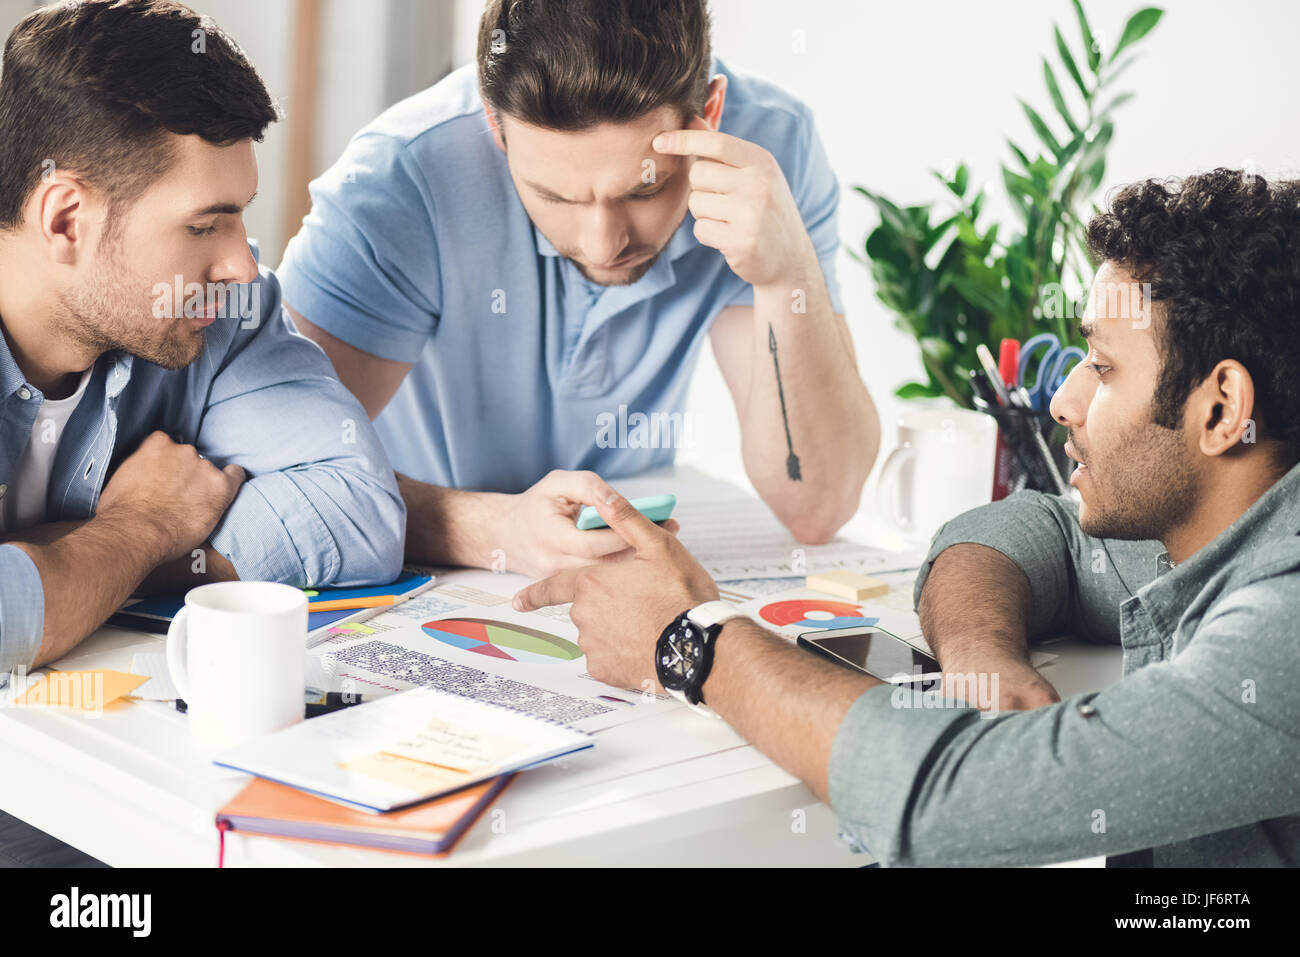 Three young businessmen sitting at table and working on new project together, business teamwork concept - Stock Image